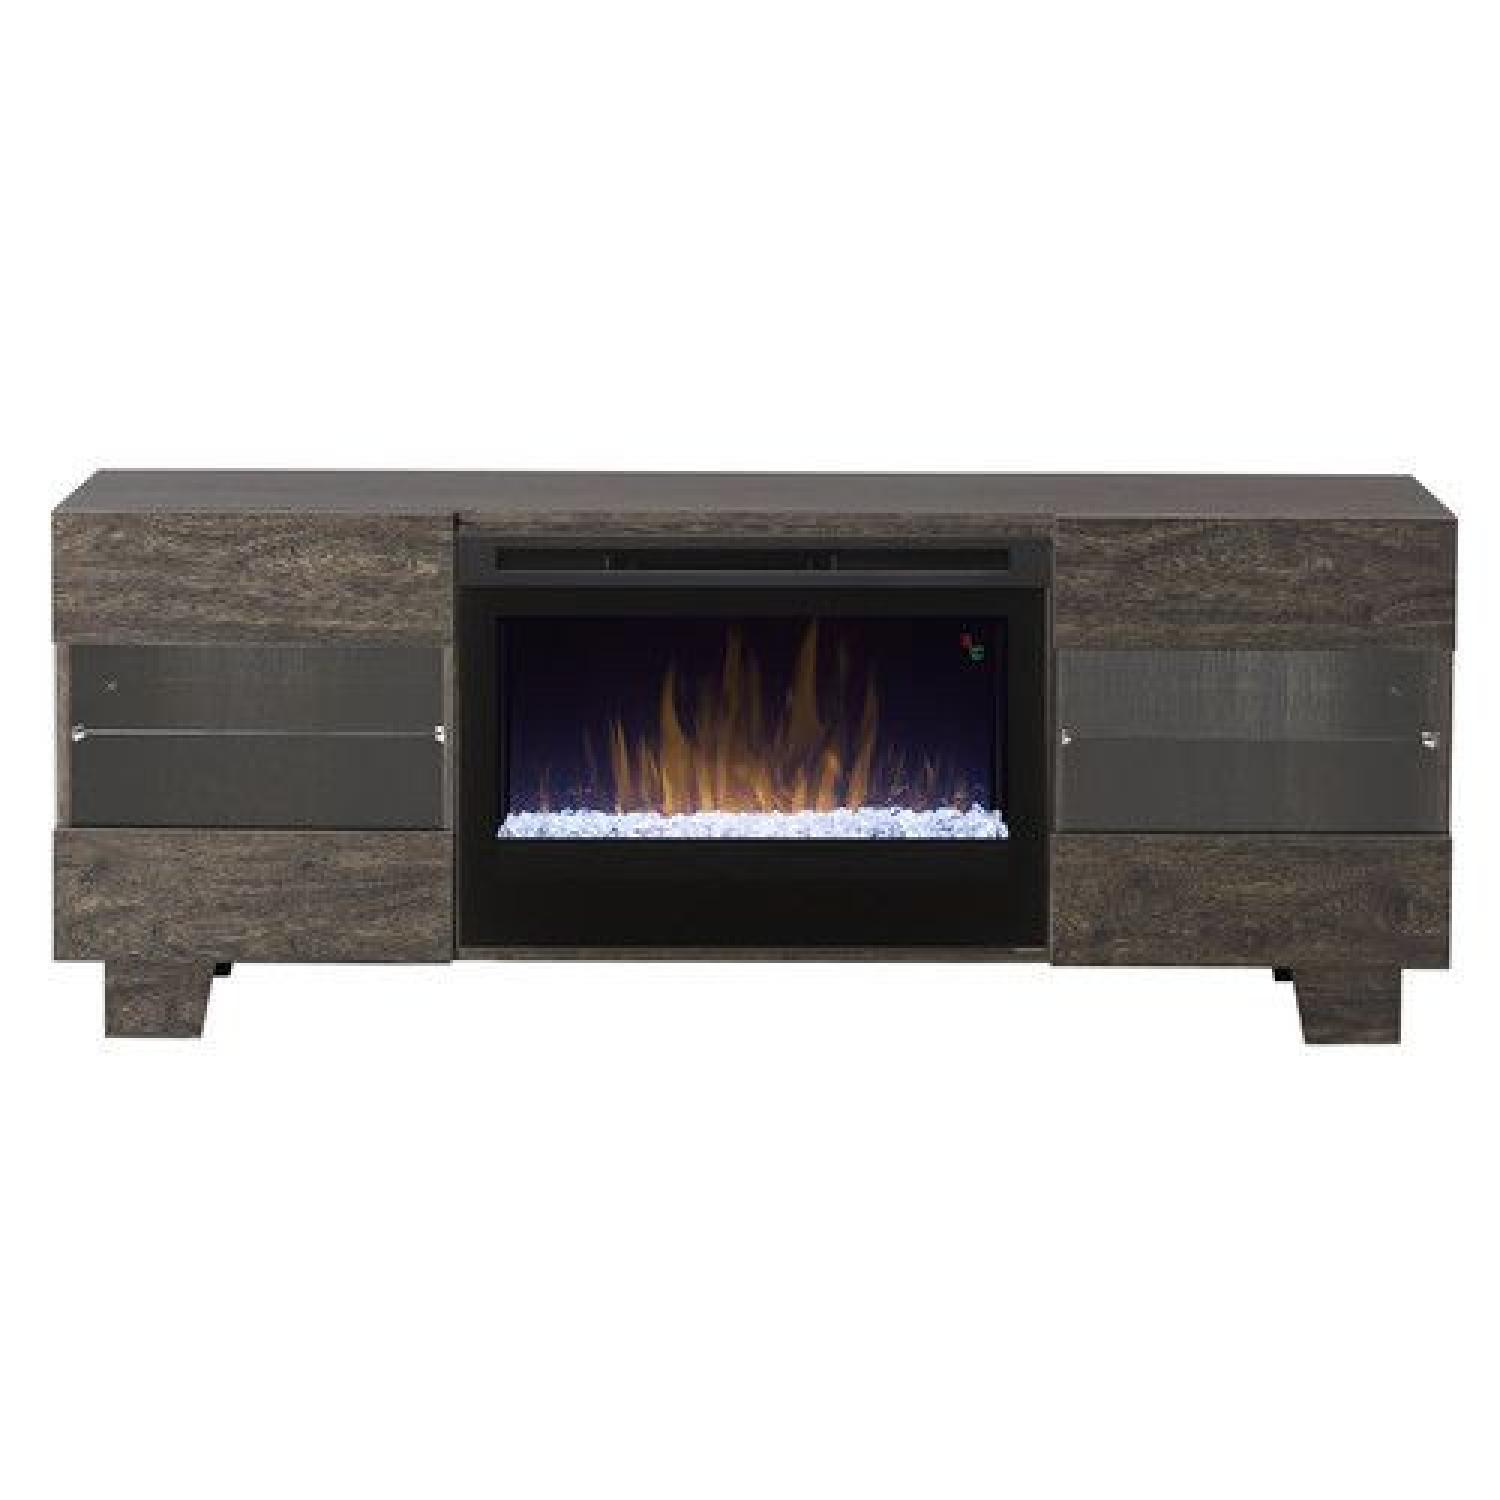 Wayfair Max TV Stand with Electric Fireplace by Dimplex - image-13